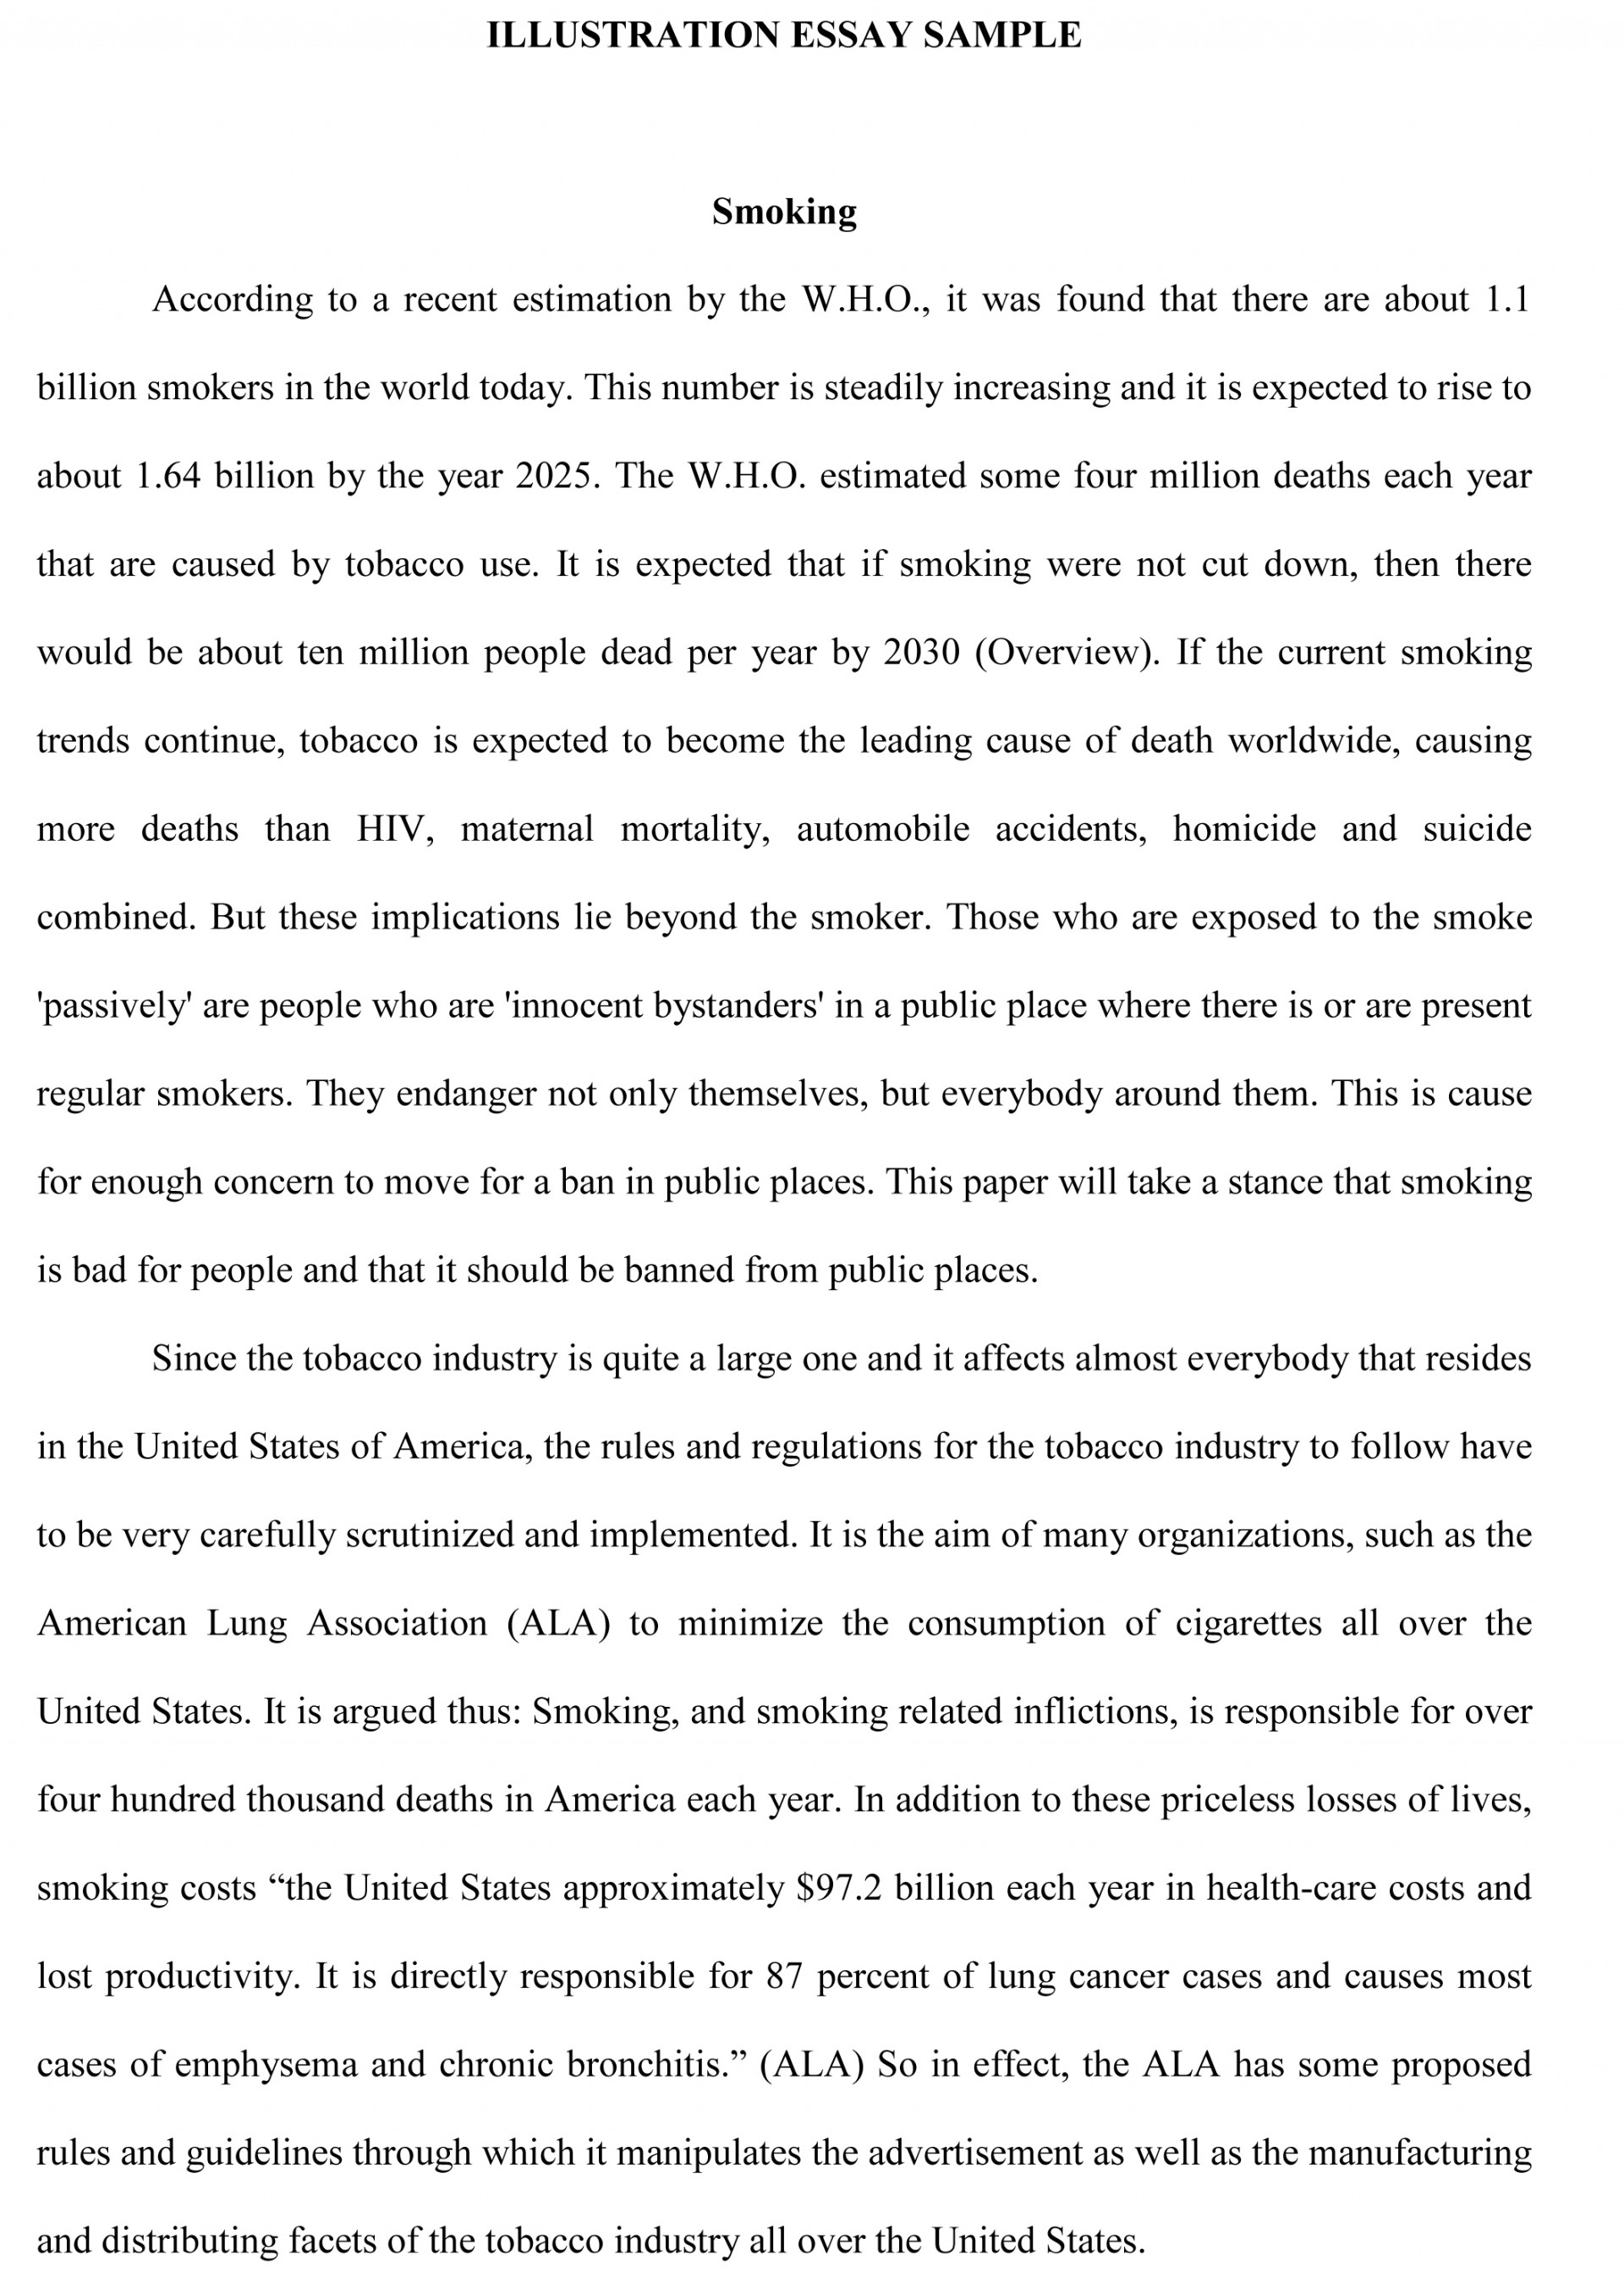 011 Essay Example Illustration Sample Excellent Formal Analysis Outline Checker Introduction 1920